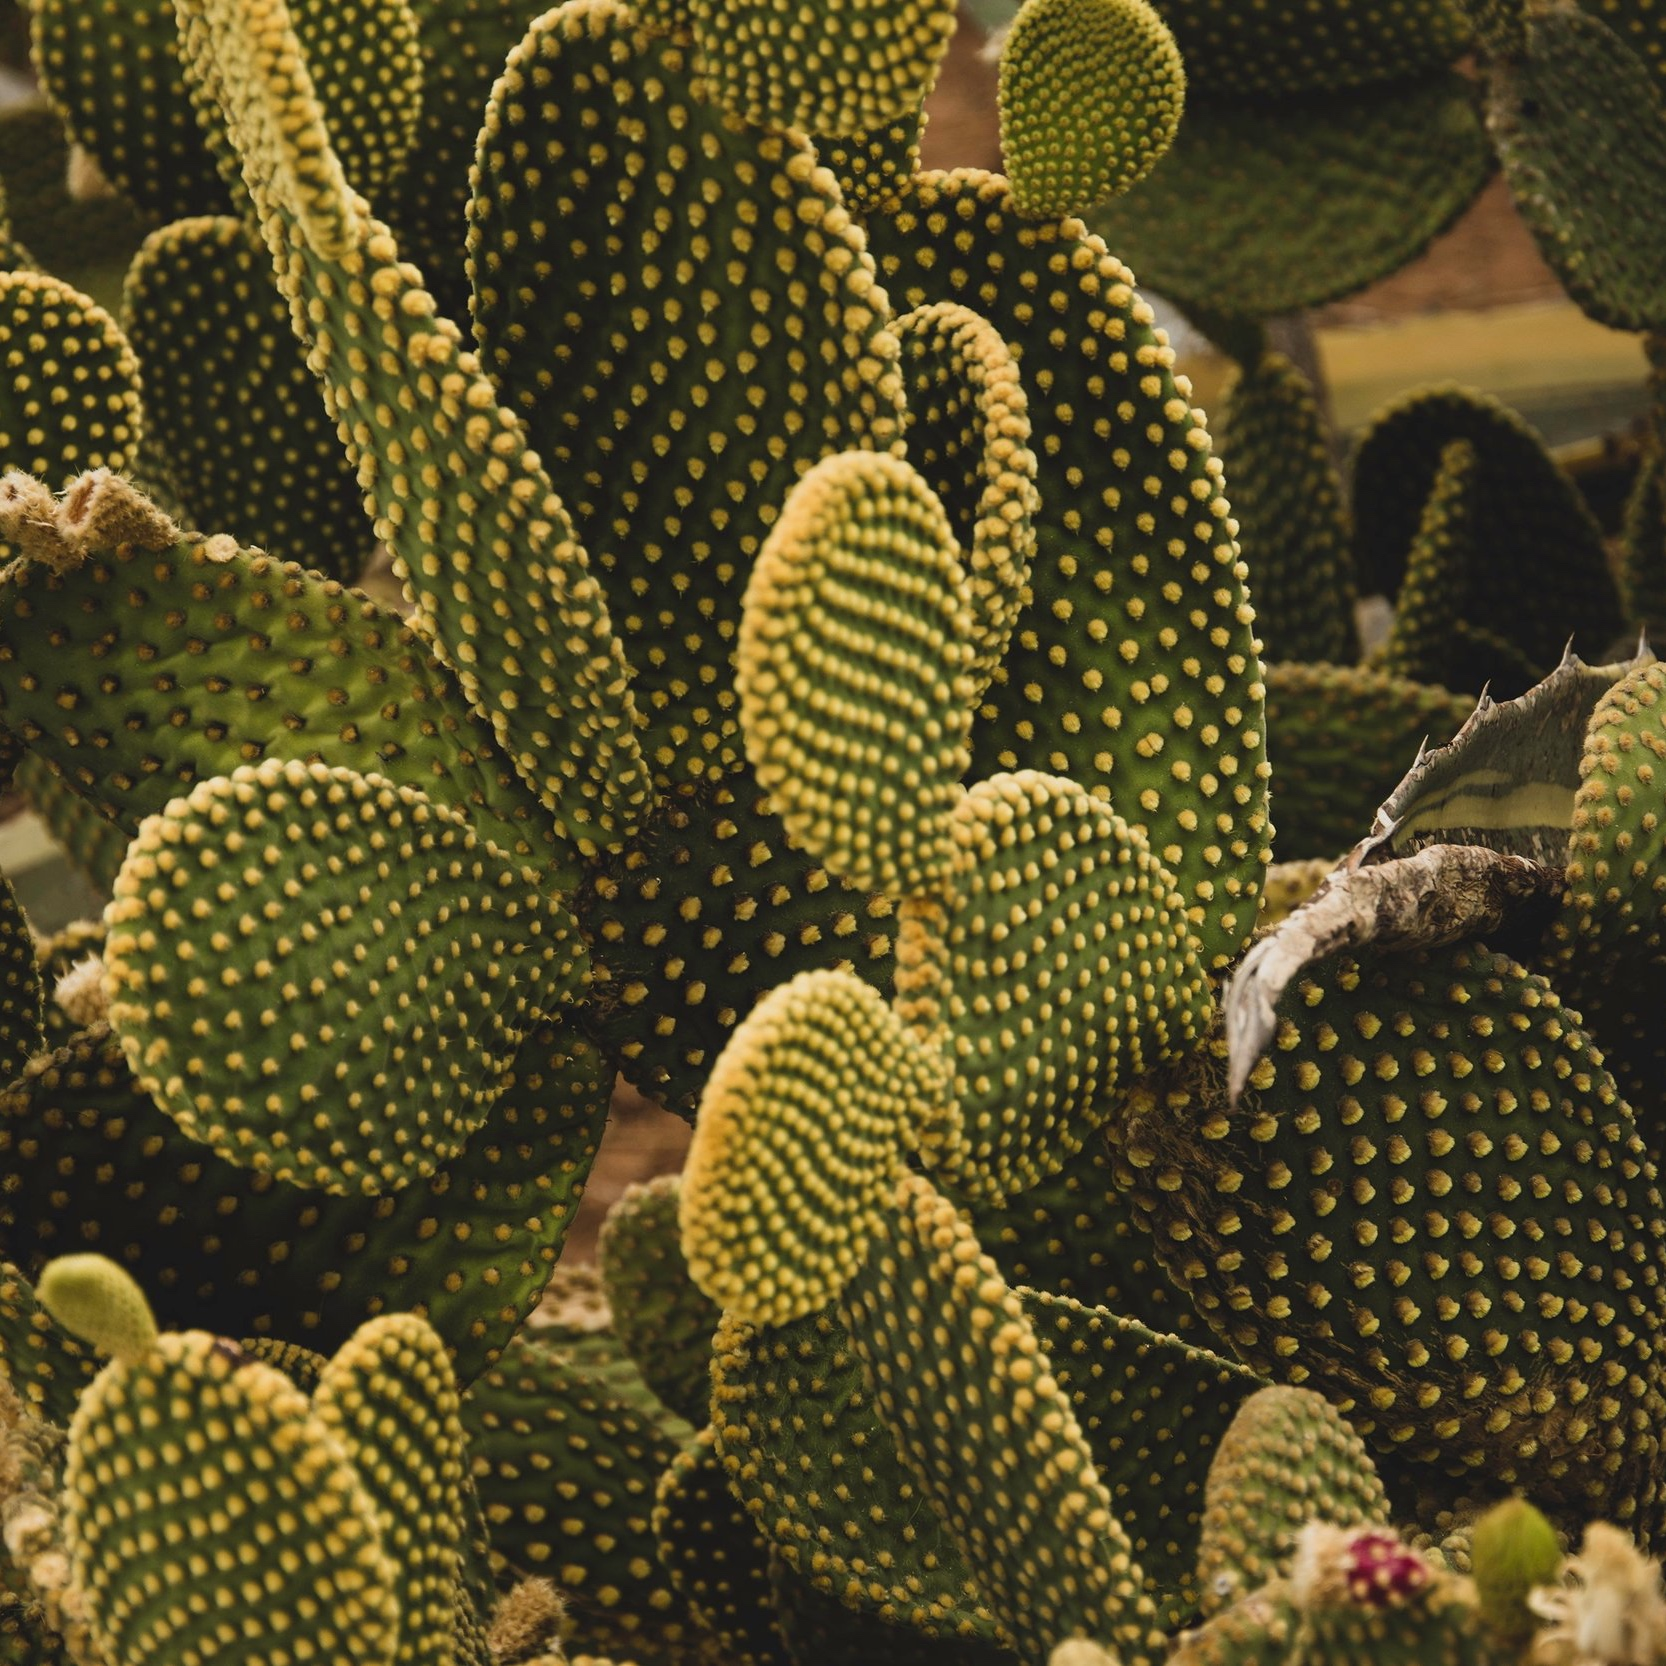 Space Coast Cactus Farm - Some sharp additions for your garden.